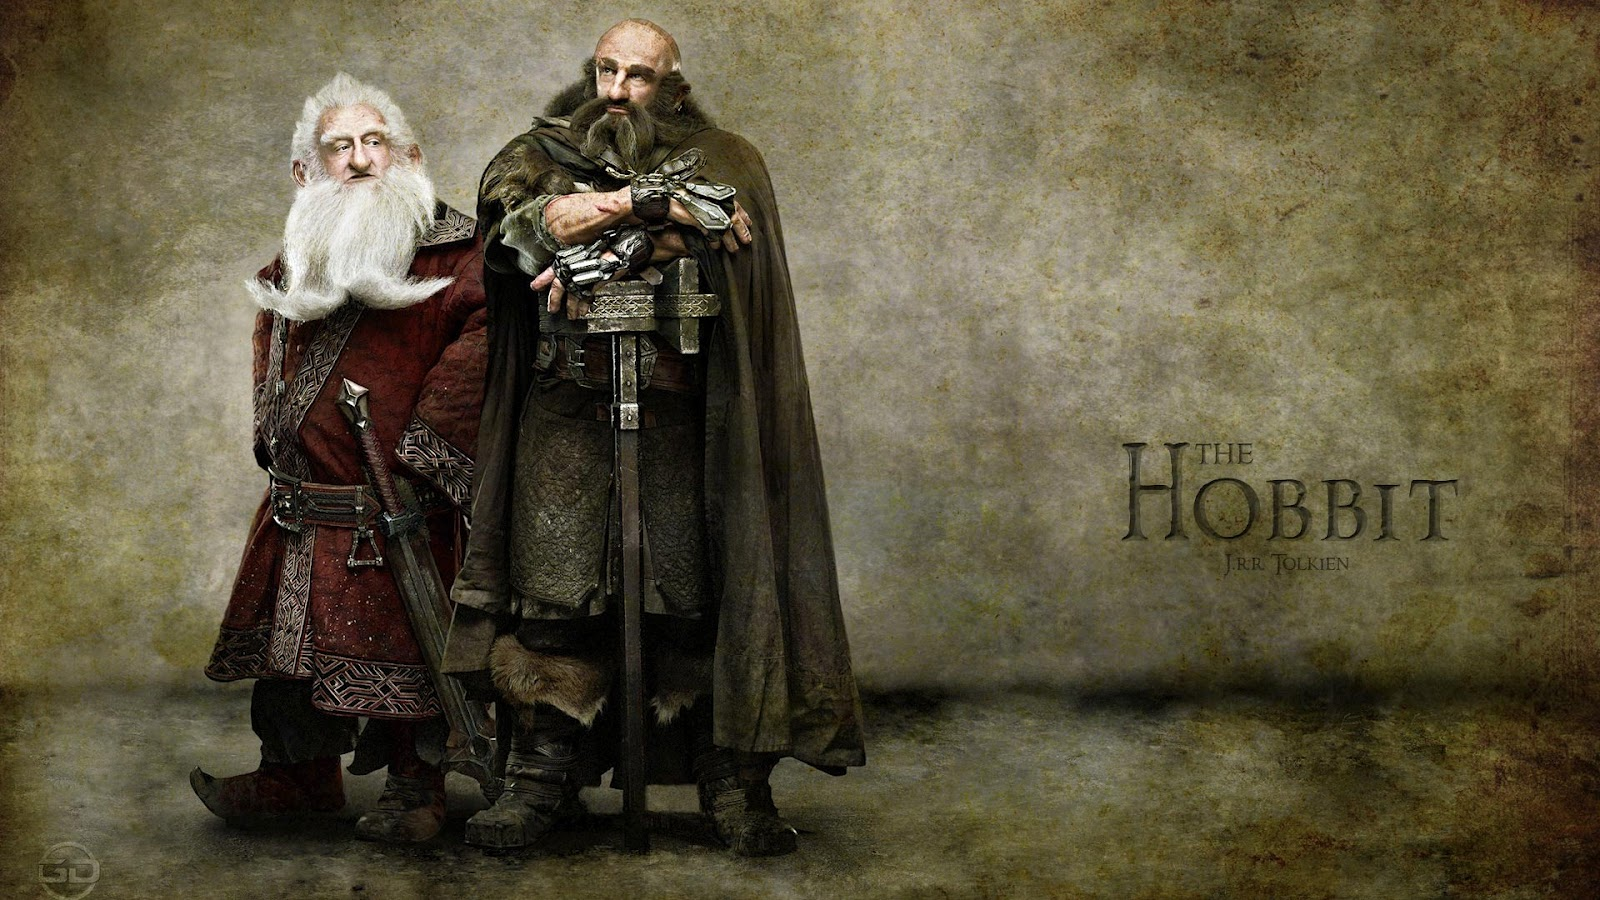 http://3.bp.blogspot.com/-kJM285AwbWg/T7L-oL4CtmI/AAAAAAAAEew/9JHjXrL2FrE/s1600/The+Hobbit+An+Unexpected+Journey+HD+Wallpaper+6.jpg